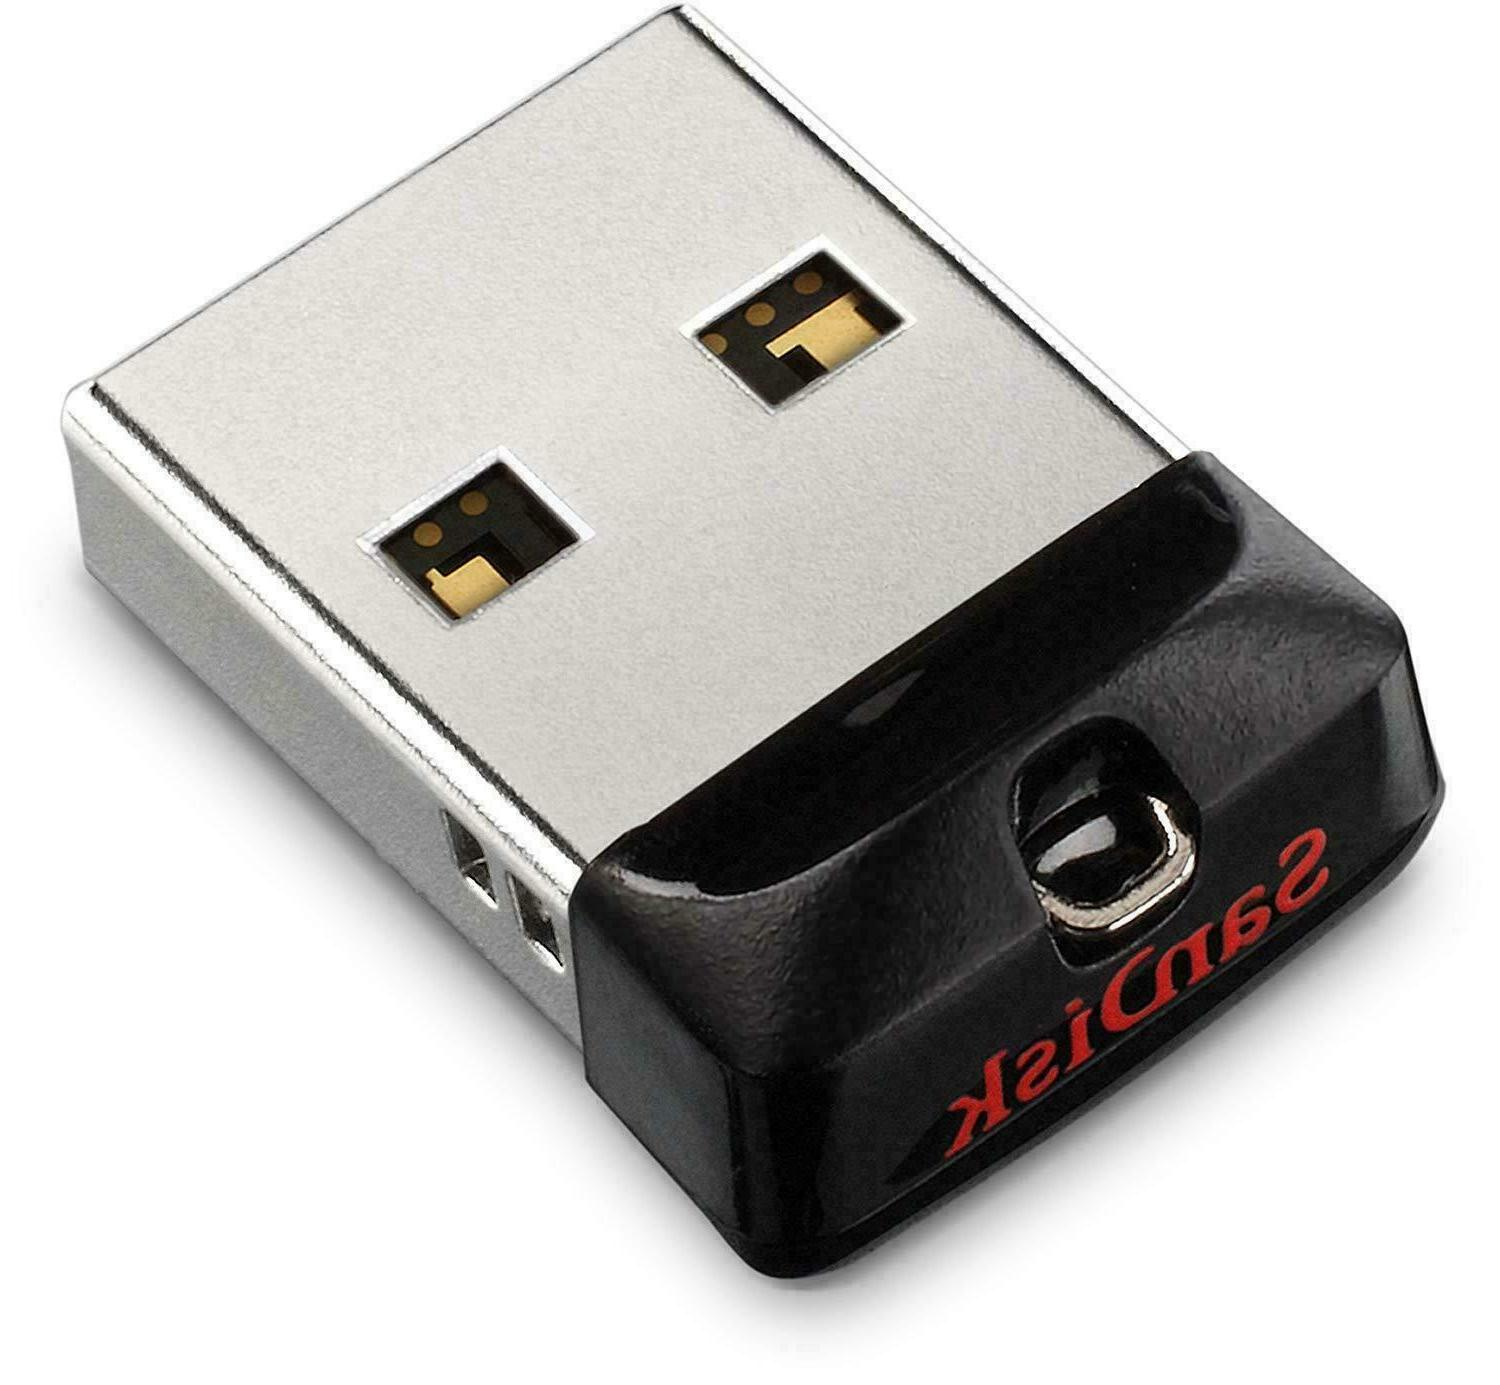 16 32 64gb cruzer fit usb memory